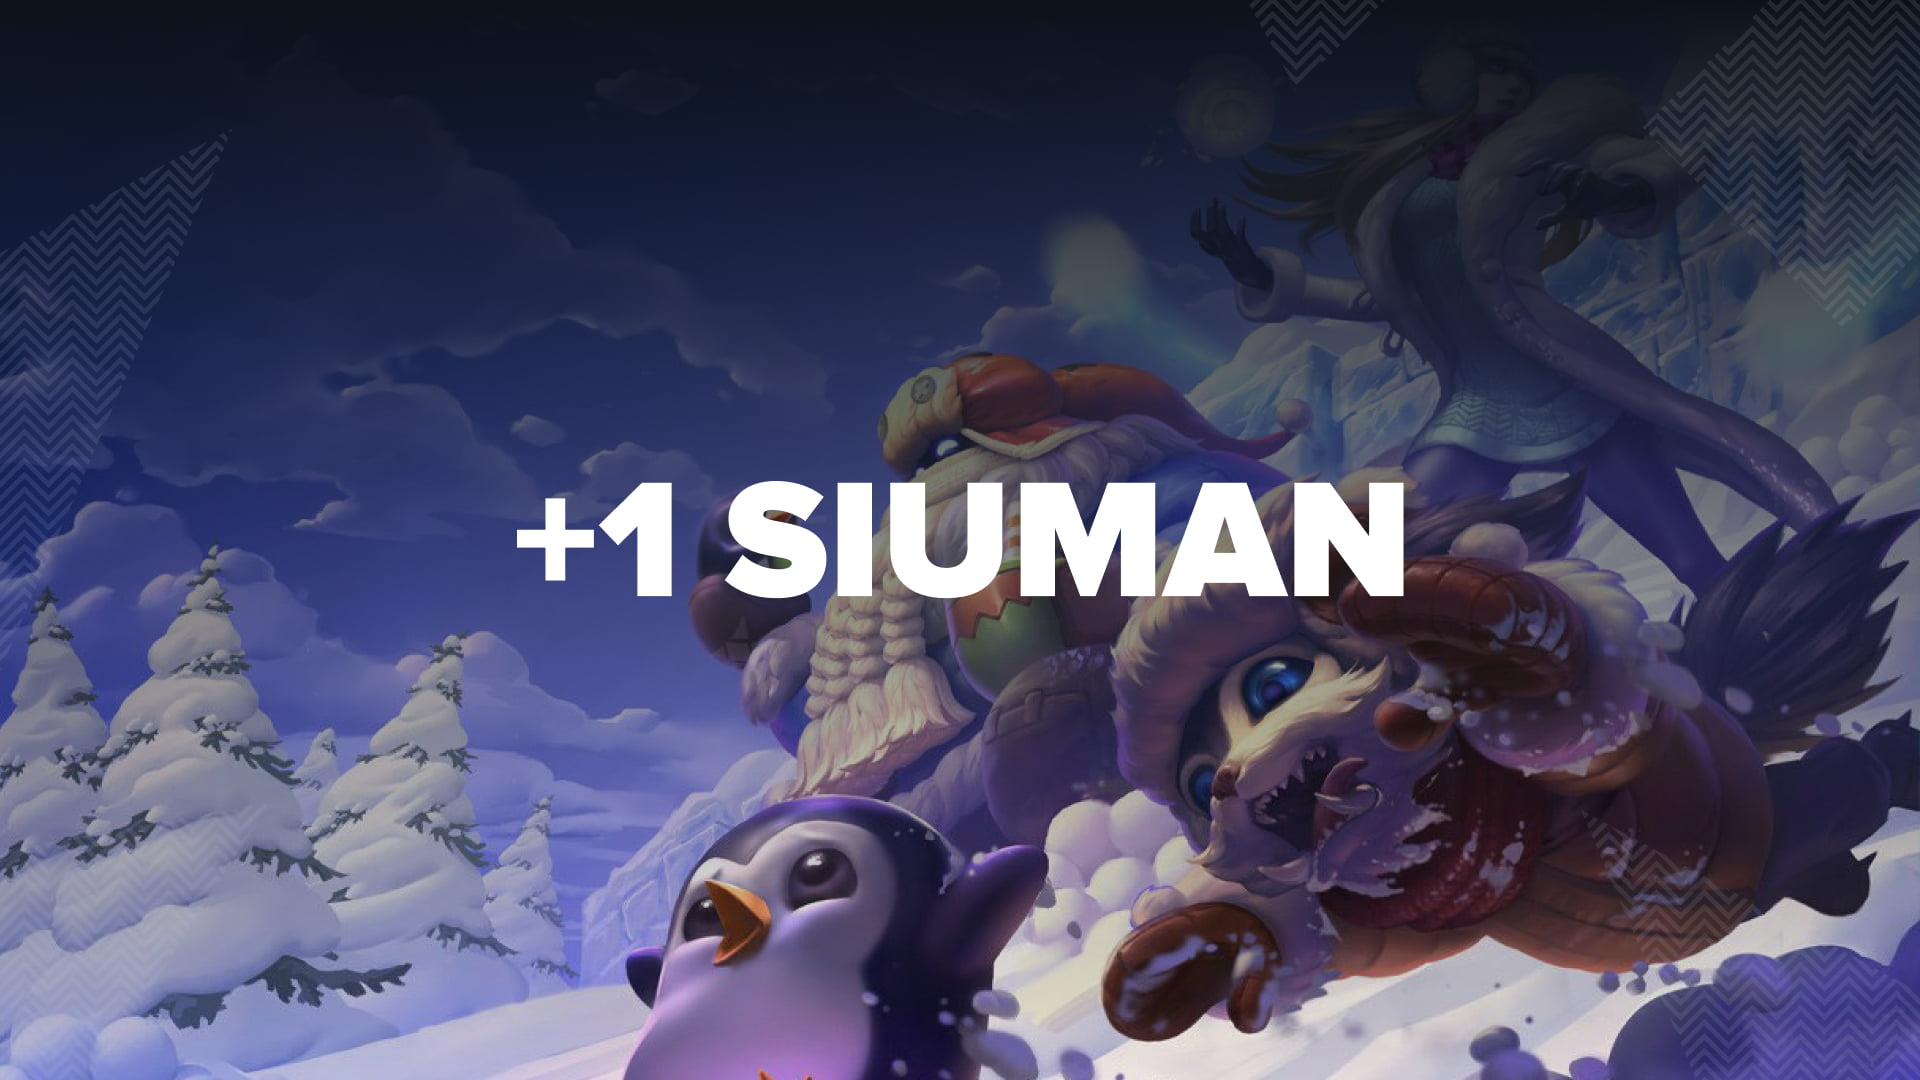 Dire Wolves sign Siuman in the Mid Lane